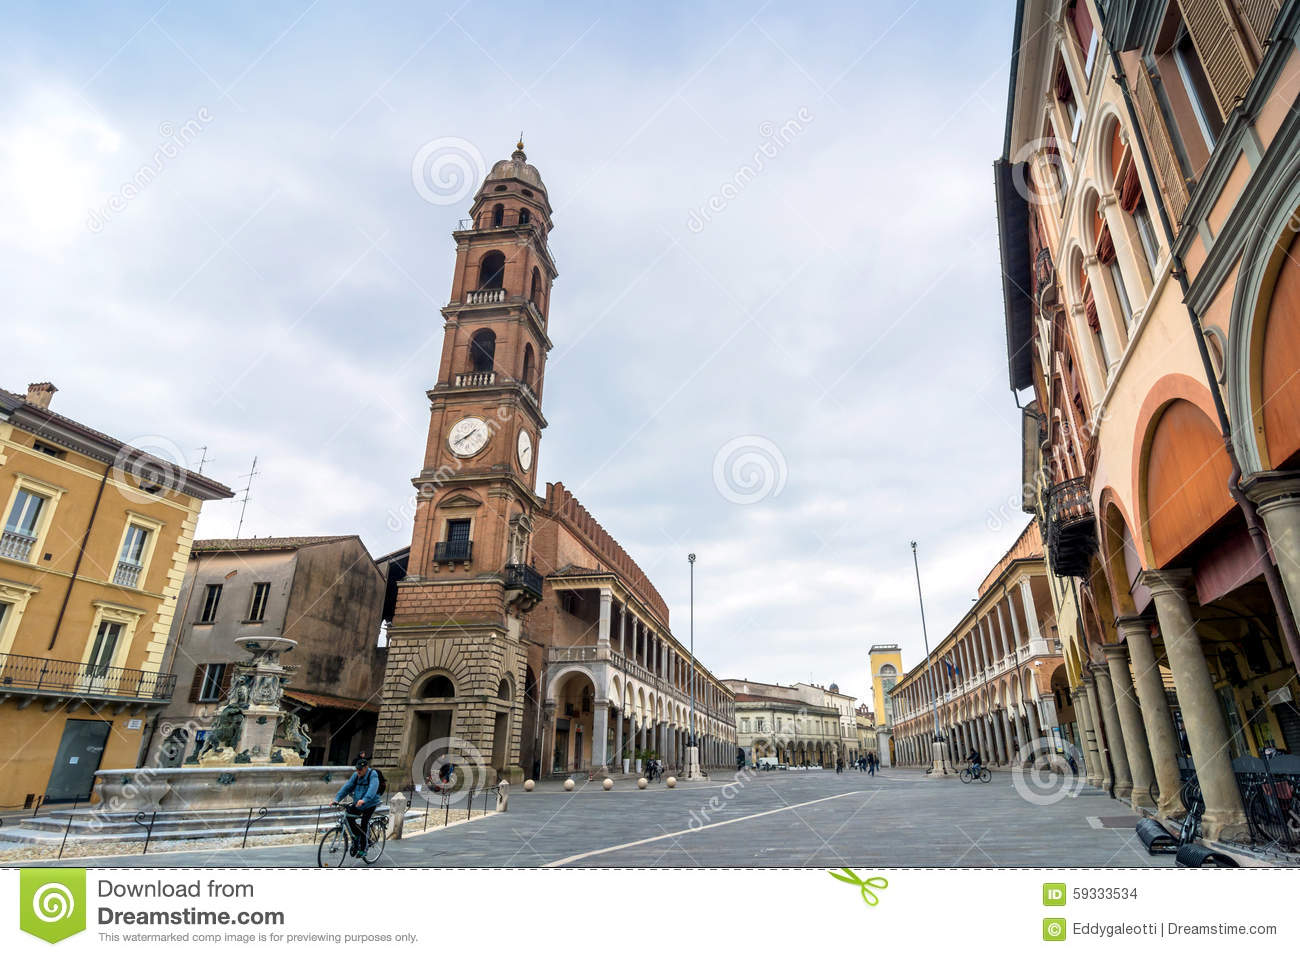 Faenza Italy  city pictures gallery : FAENZA, ITALY MARCH 9, 2015: day view of Piazza del Popolo in Faenza ...